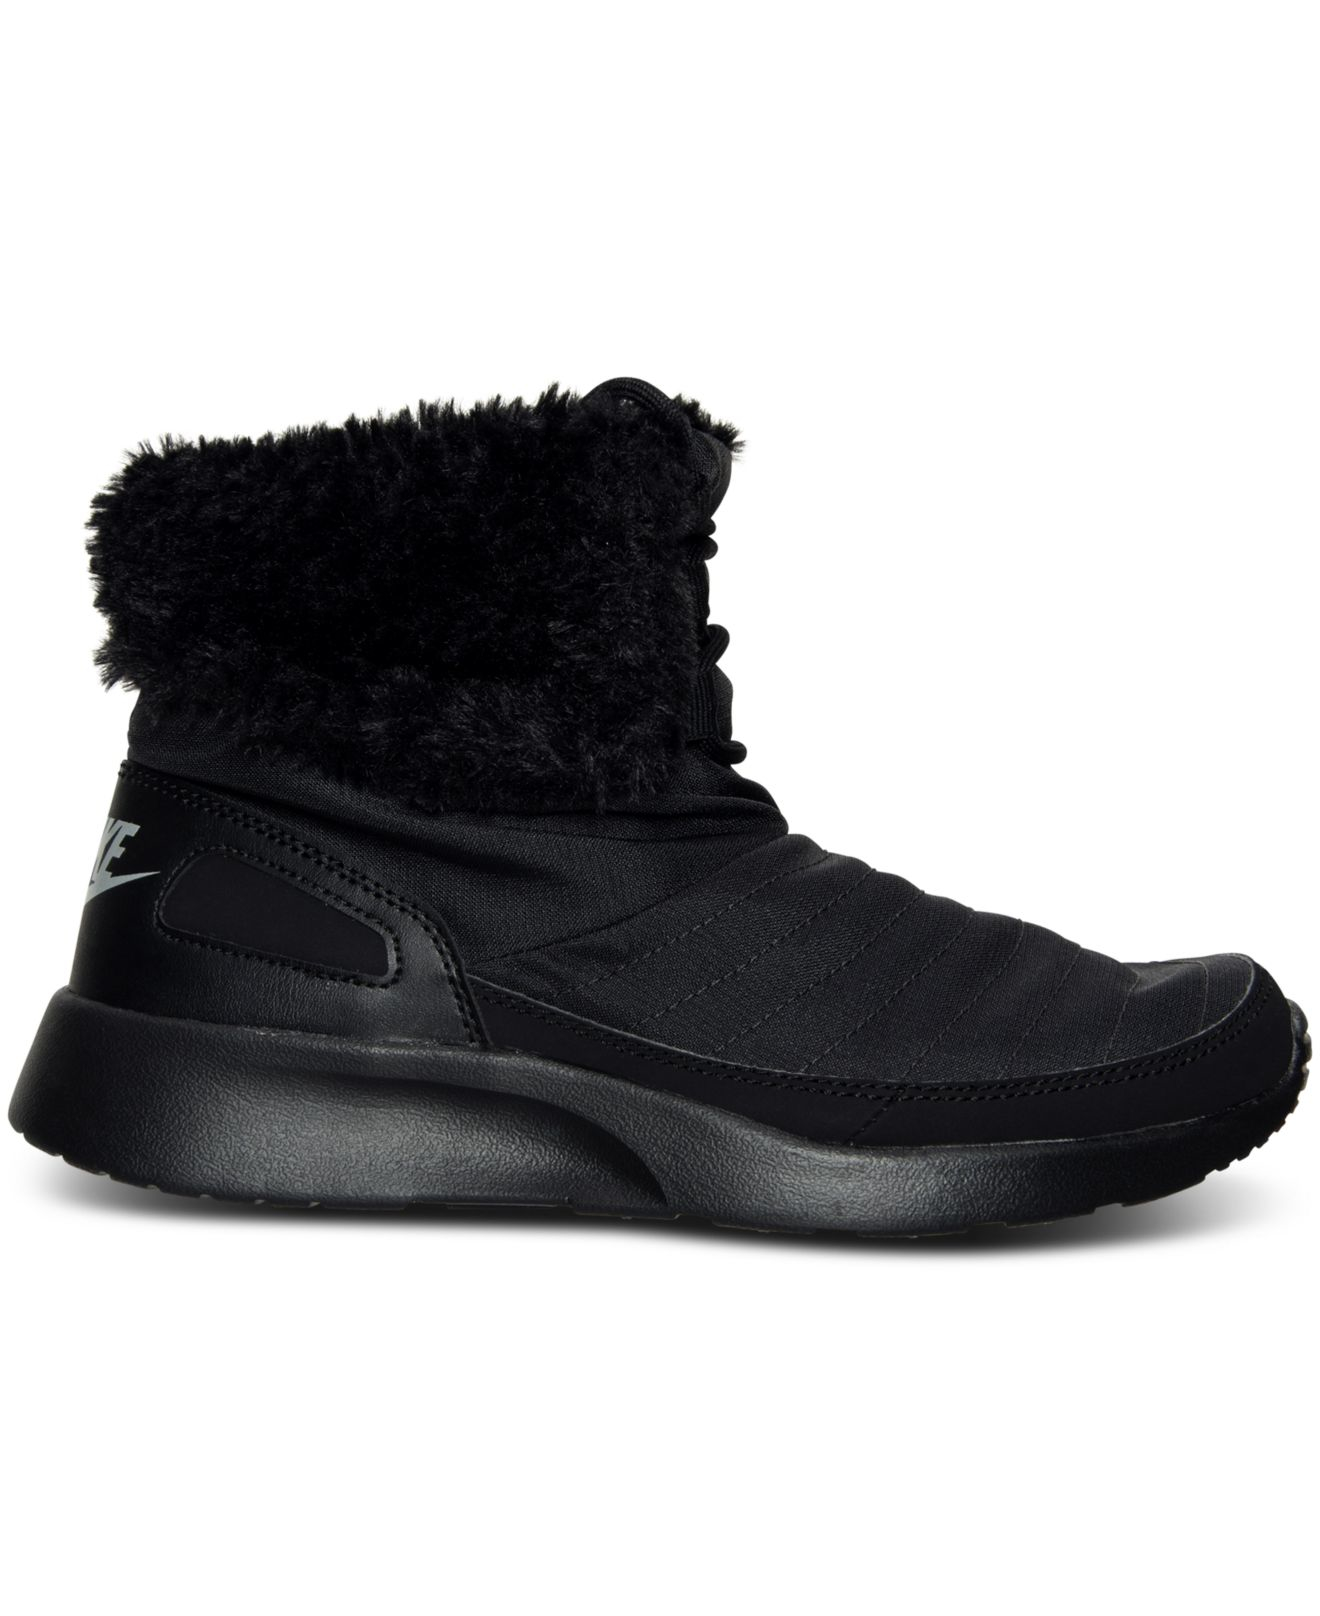 Model NIKE Winter Hi 3 Premium New Boots Snow Shoes Red Womens  Nike Shoes